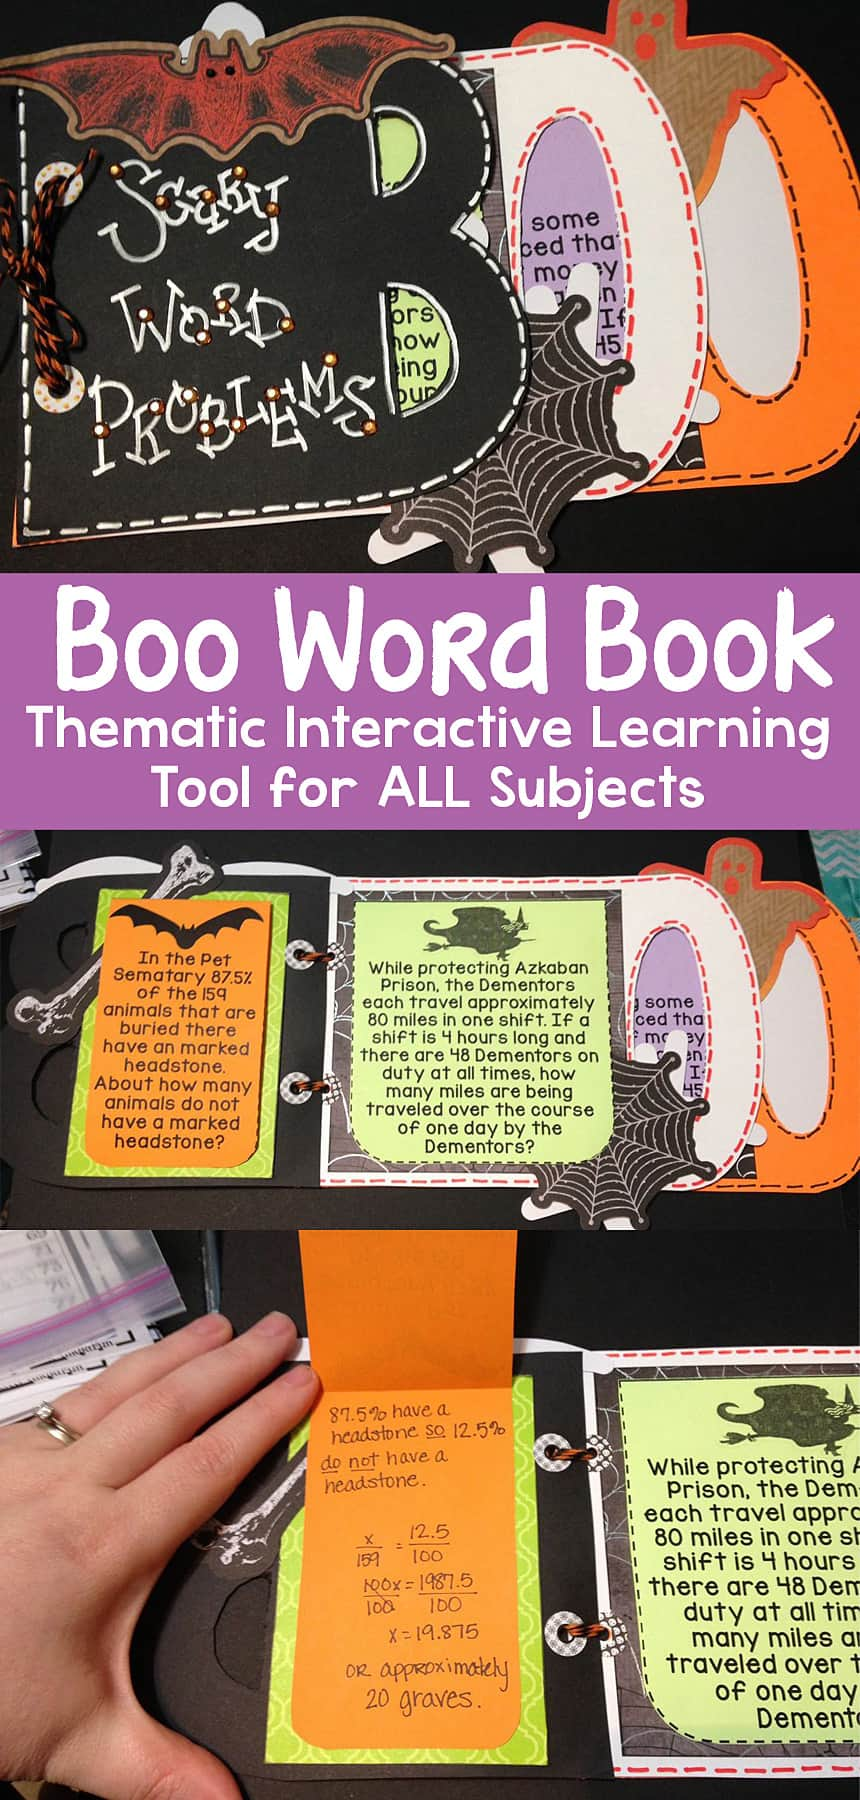 Boo Word Book – Thematic Interactive Learning Tool